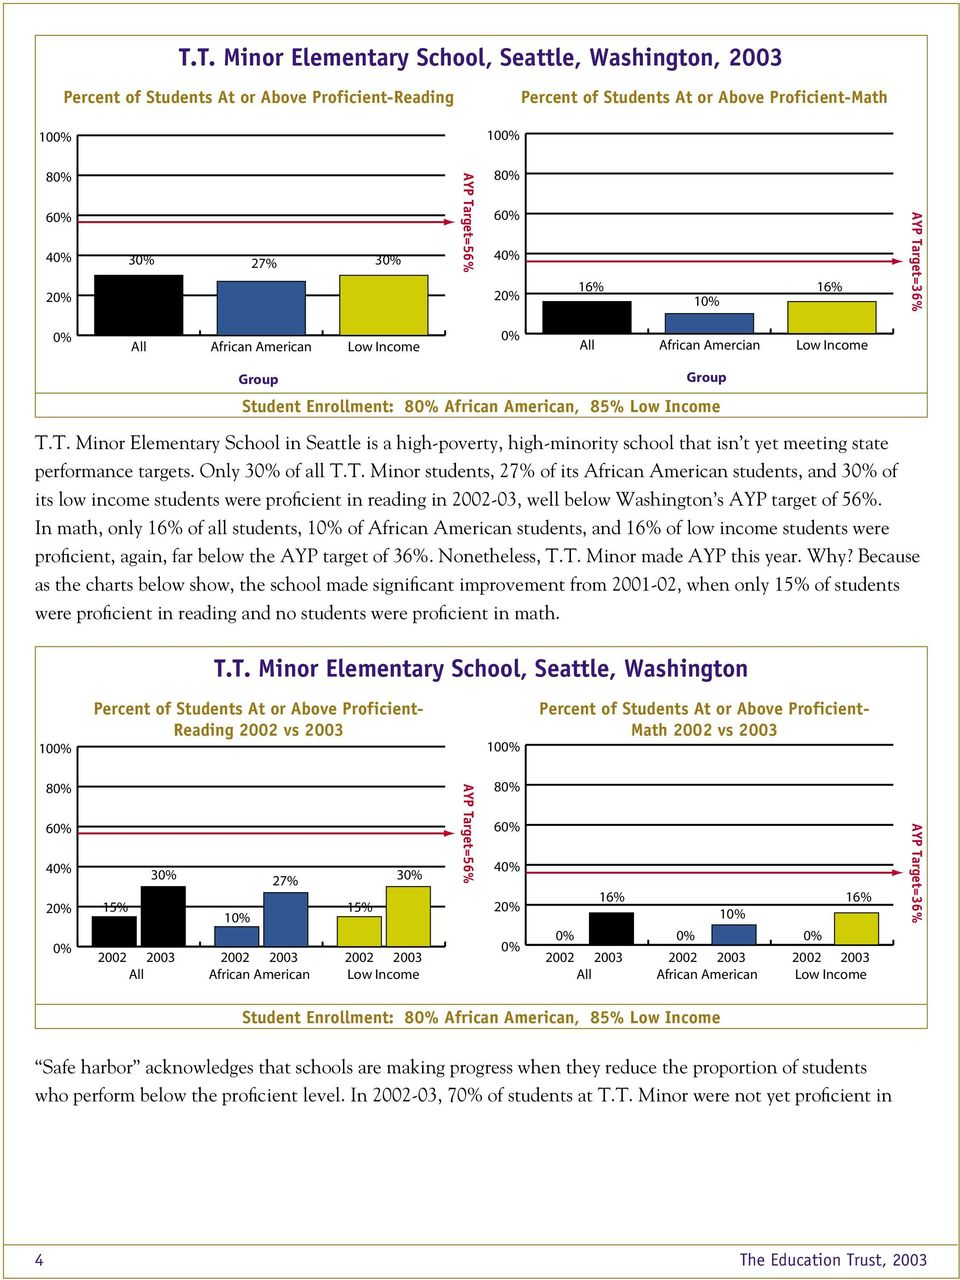 In math, only 16% of all students, 1 of students, and 16% of low income students were proficient, again, far below the AYP target of 36%. Nonetheless, T.T. Minor made AYP this year. Why?